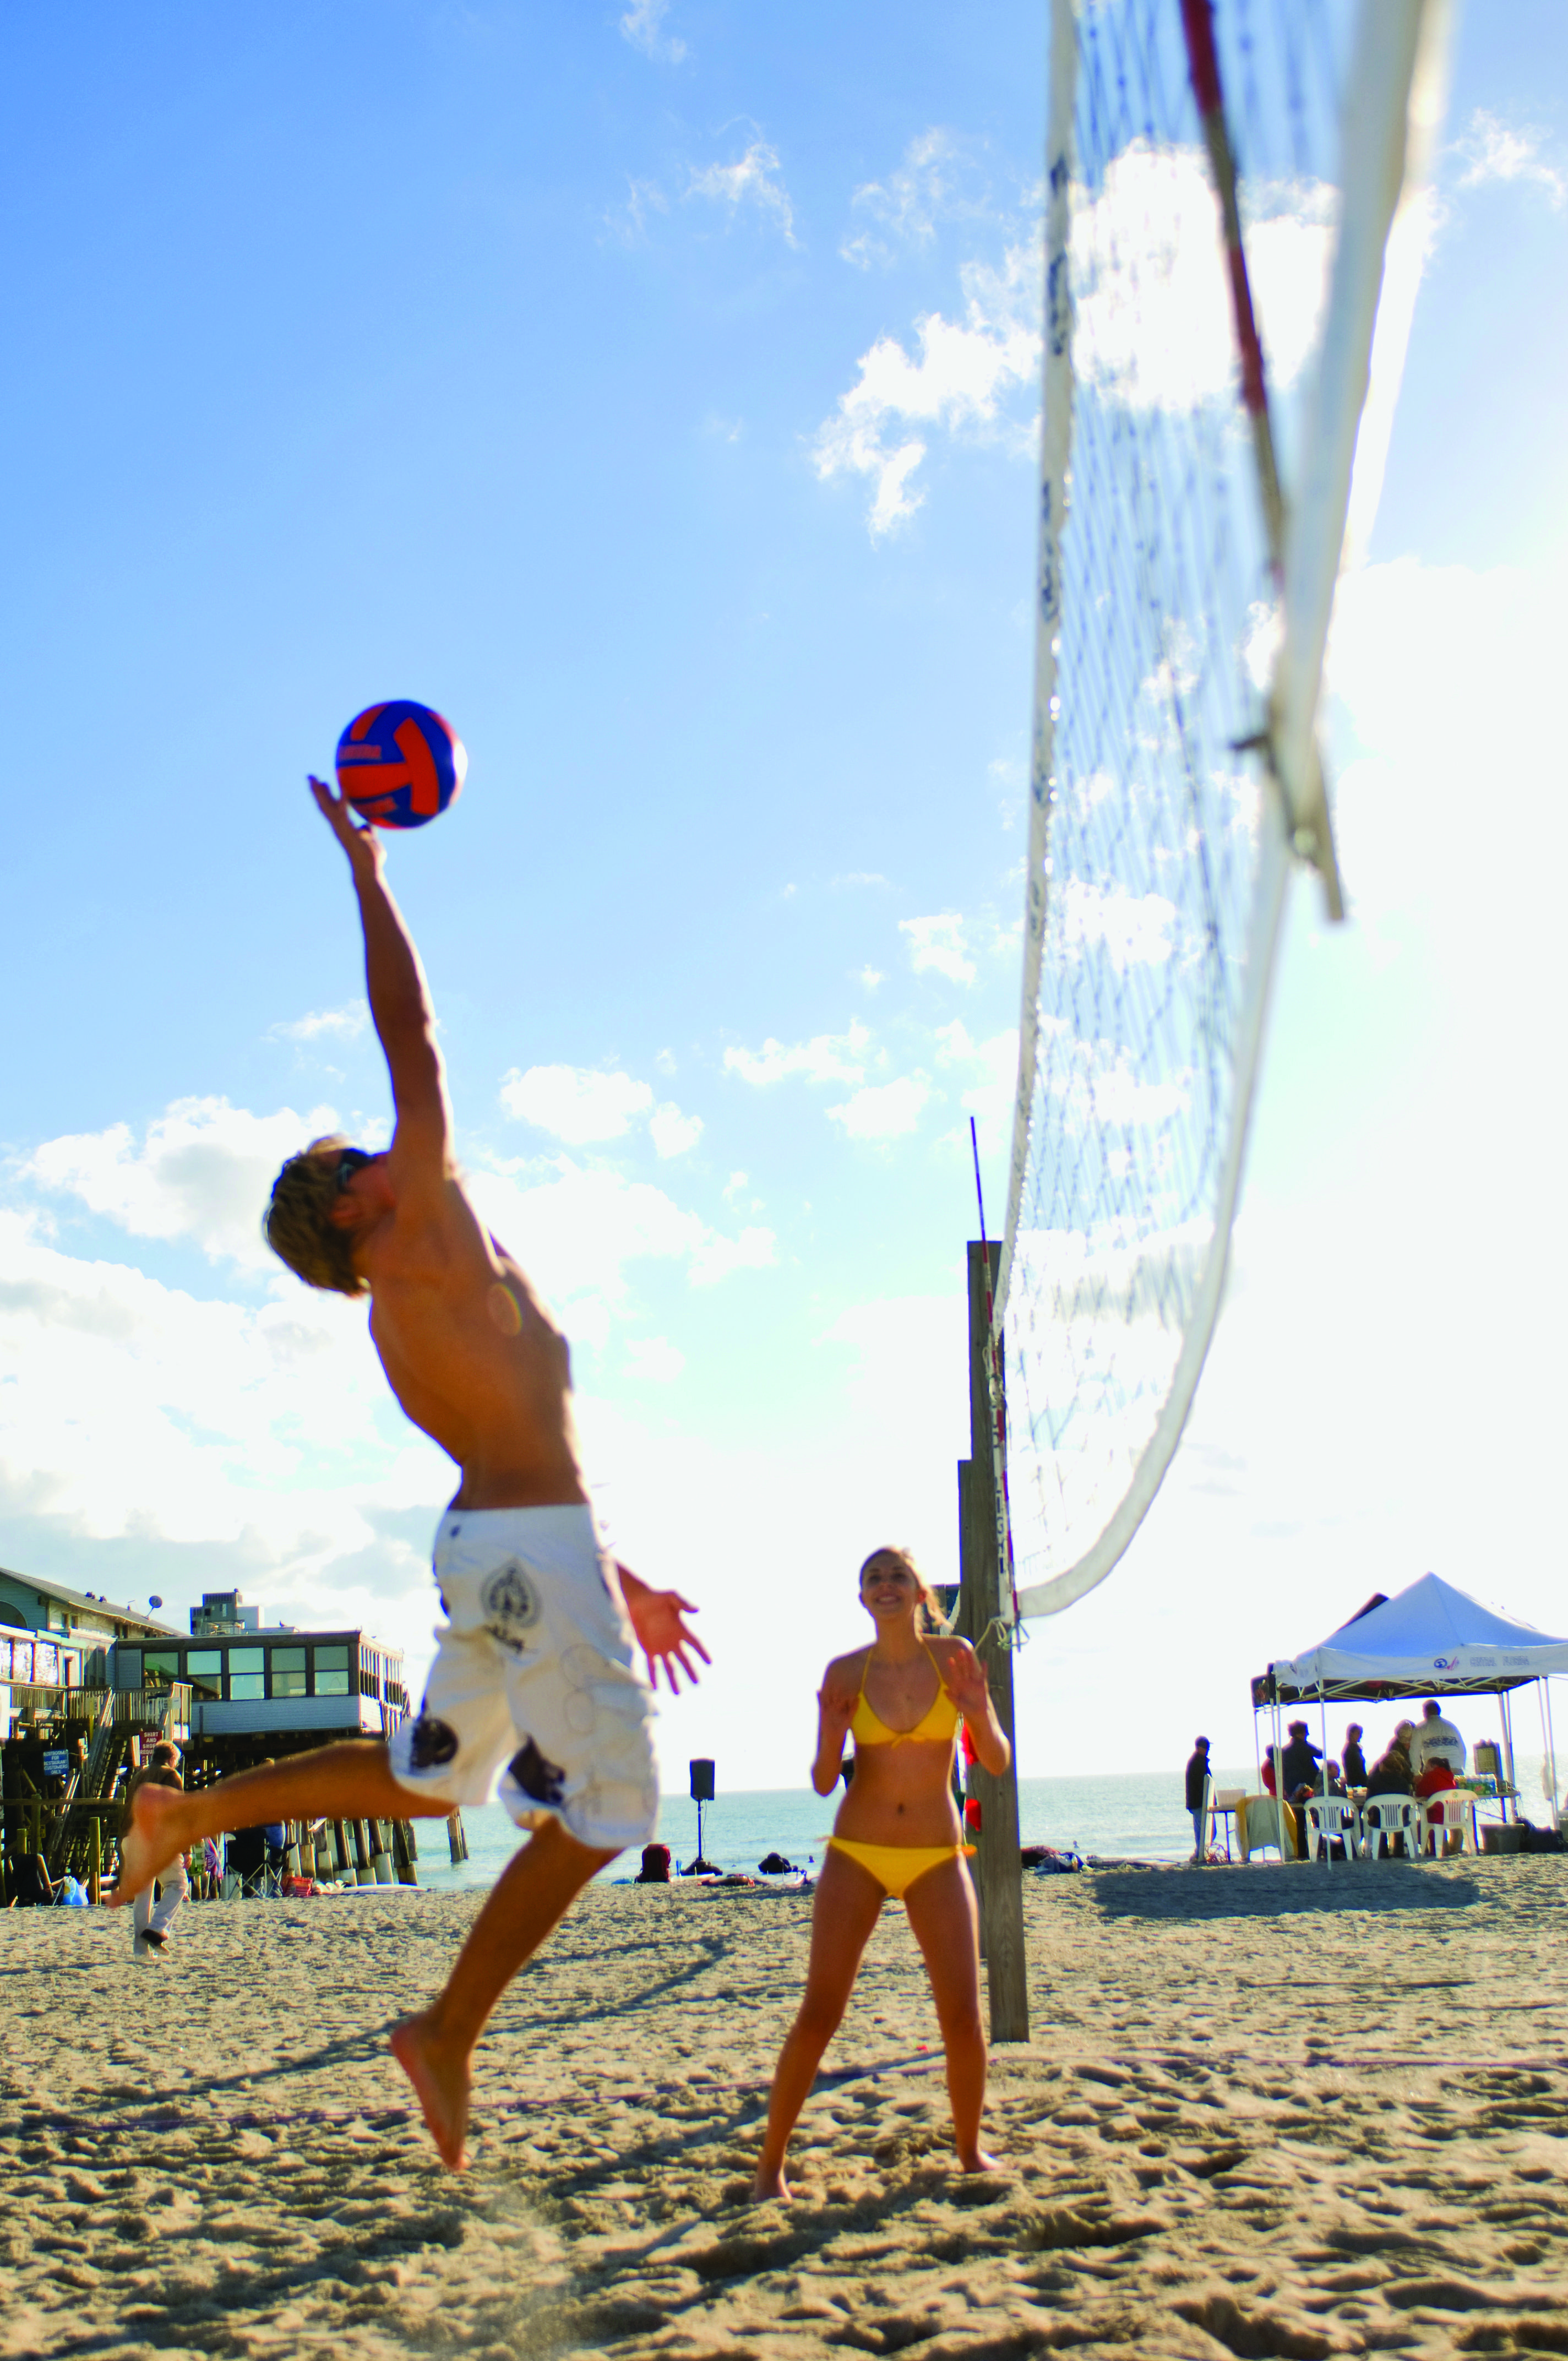 Pin By Holiday Inn Club Vacations On Florida Space Coast Vacation Inspiration Travel And Tourism Sand Volleyball Court Vacation Inspiration